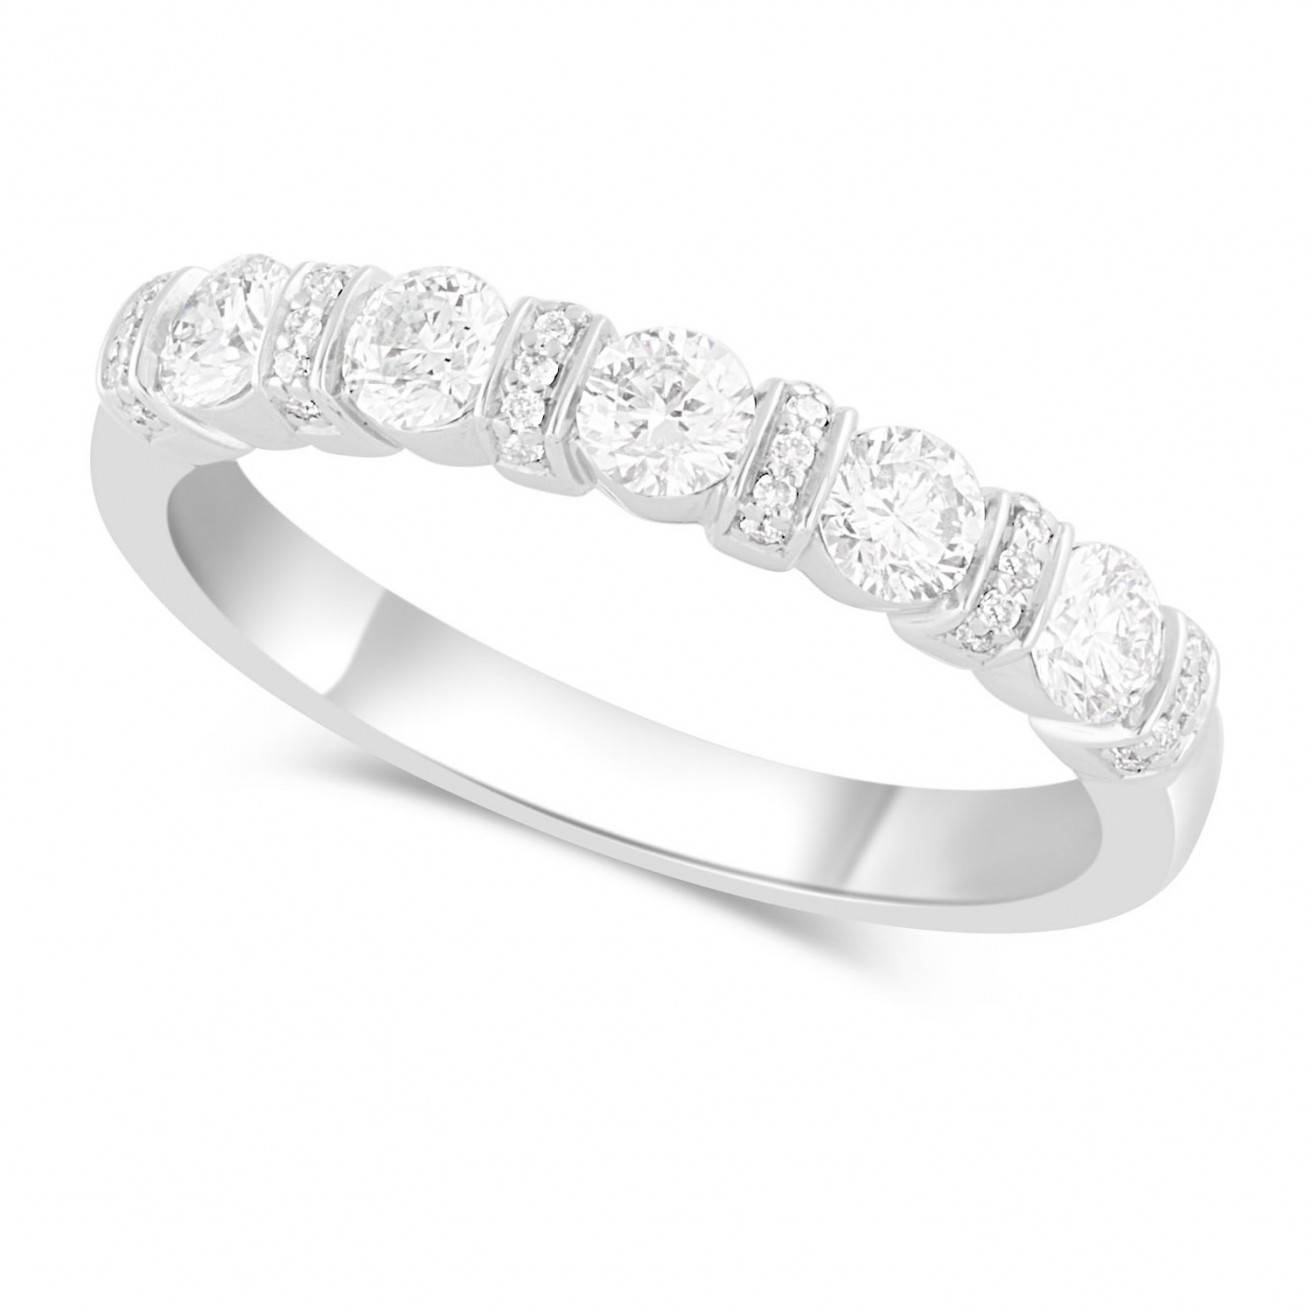 Buy Platinum Wedding Bands Online – Fraser Hart Throughout Newest Platinum Channel Set Wedding Band (View 14 of 15)